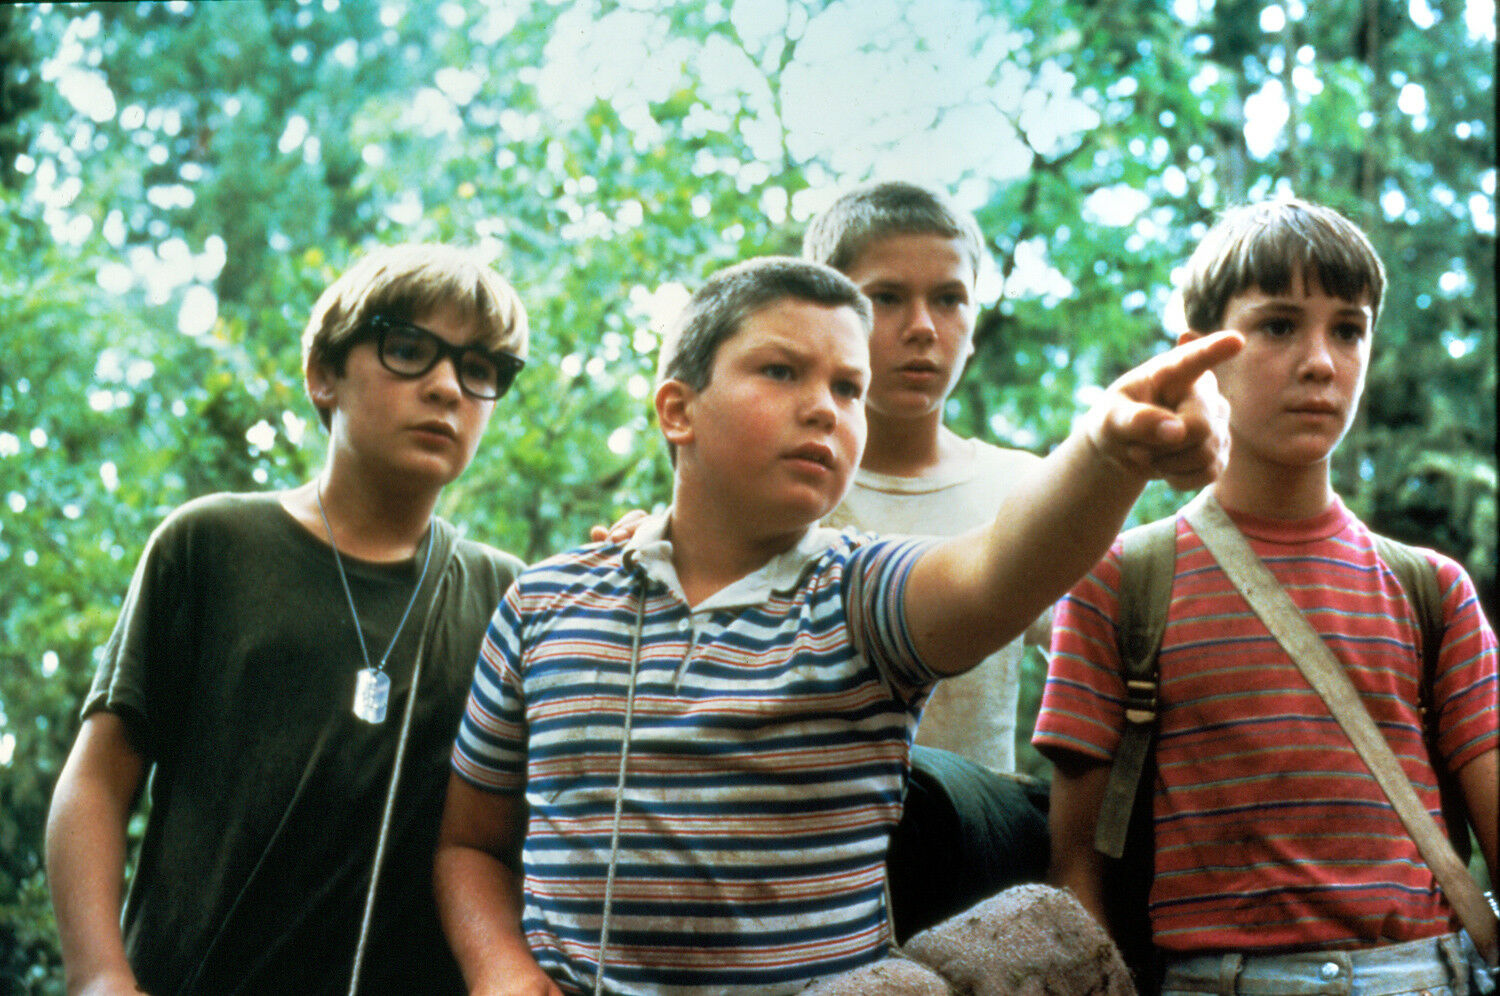 ZOMERFILMS - Stand by me